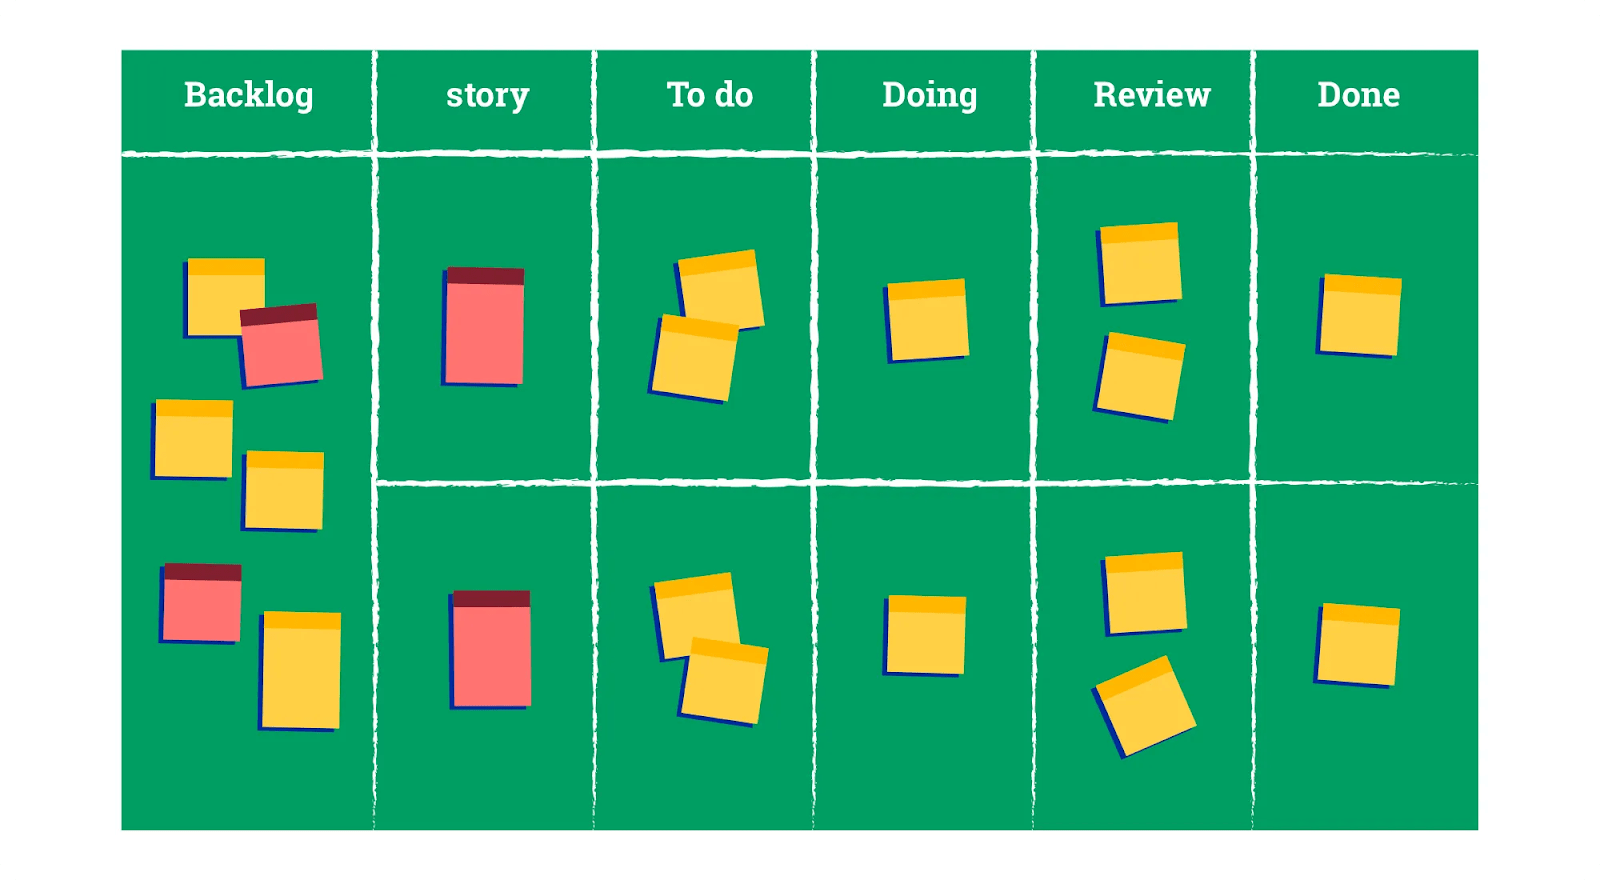 Scrum boards are useful visuals that help the team focus and help eachother.